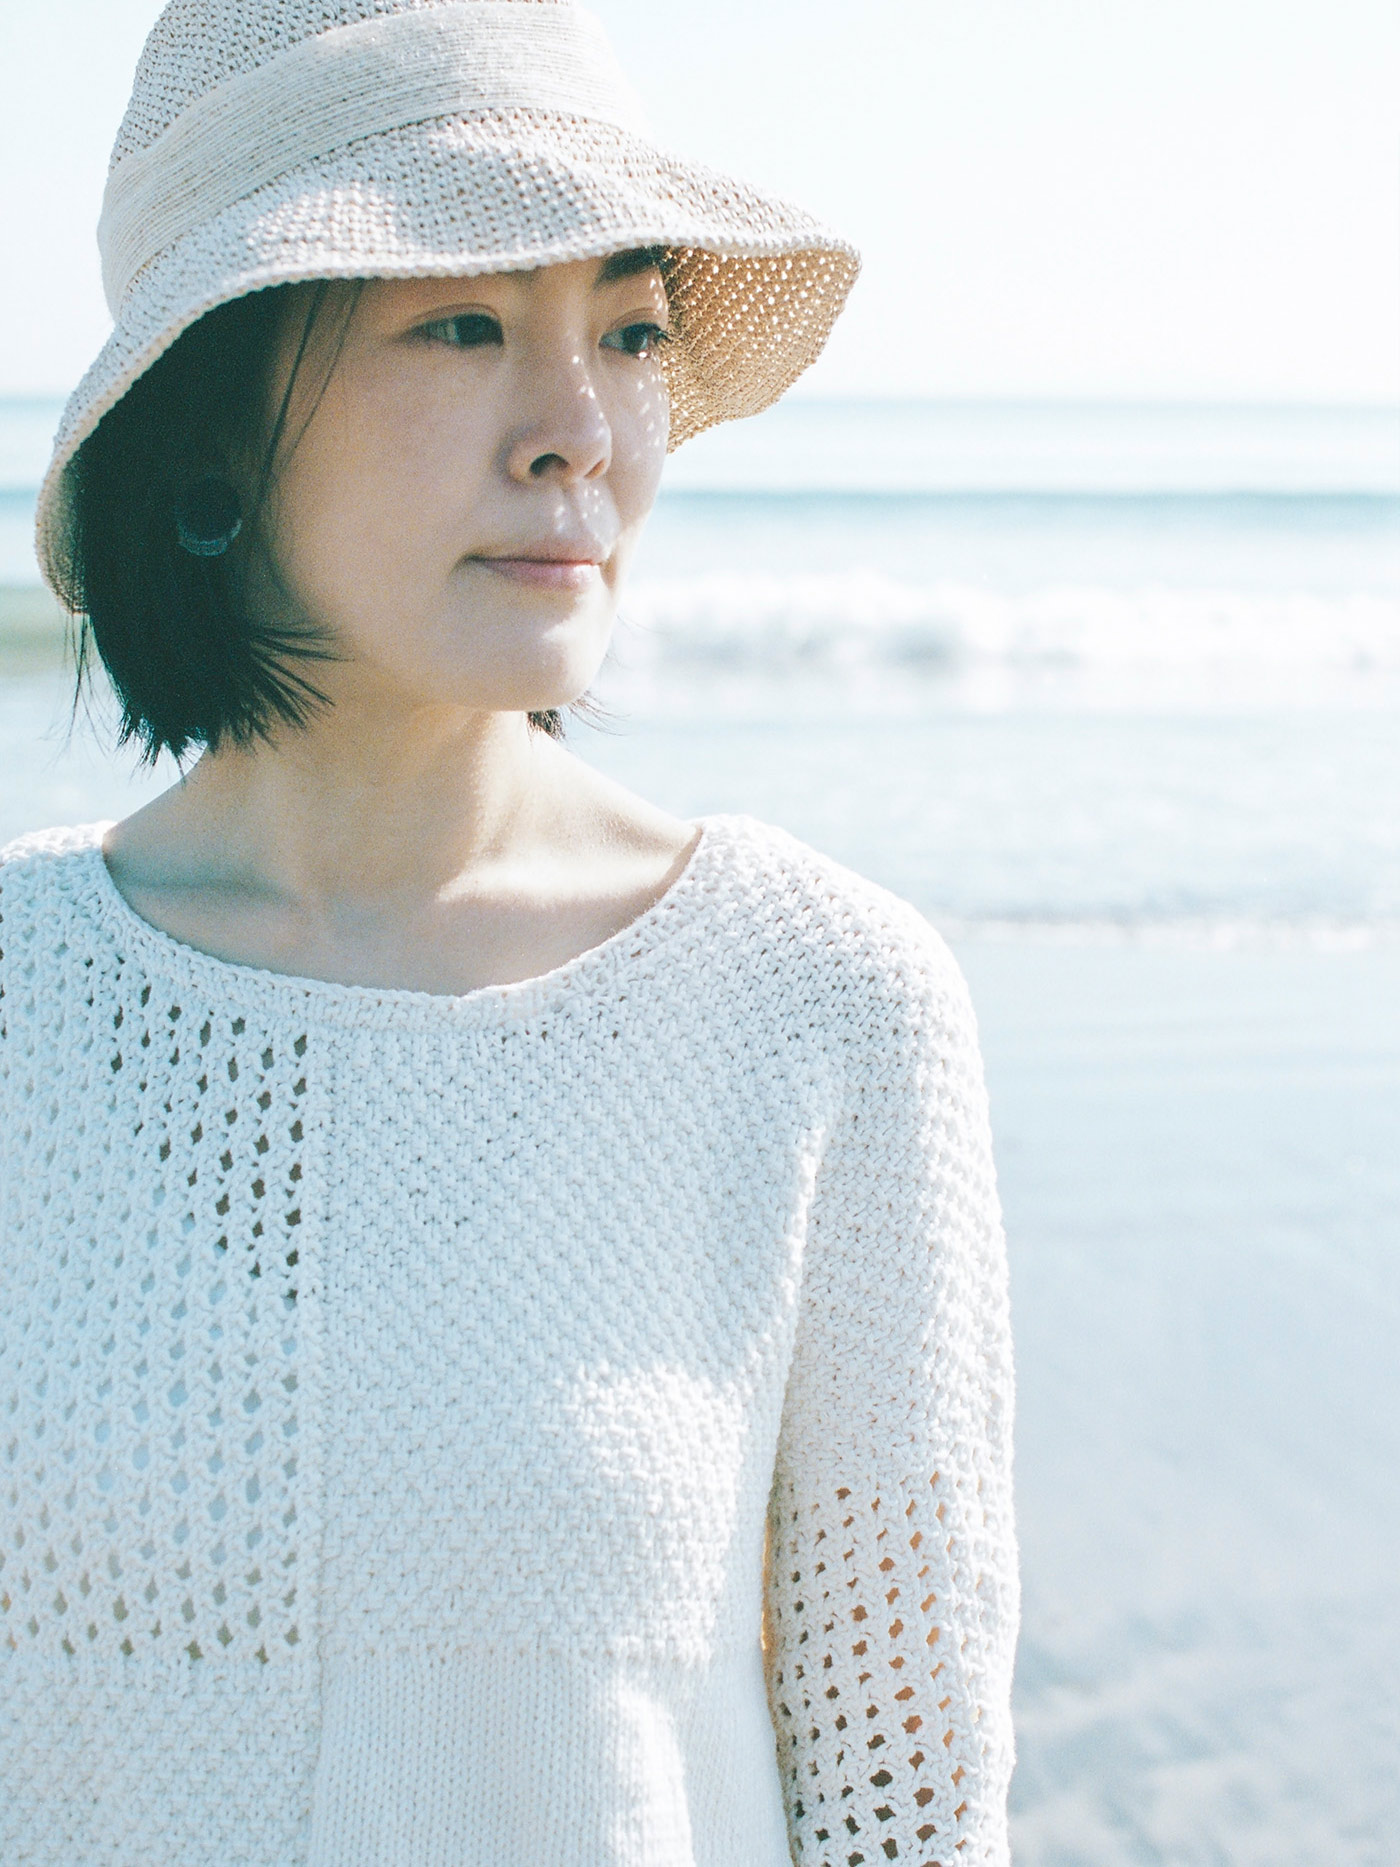 close-up view of woman standing at the ocean wearing a white drop shoulder cotton sweater. Body of sweater is divided into four quarters, one in stockinette, one in an open eyelet stitch, and two in double moss stitch. One sleeve is knit in eyelet stitch, another in double moss stitch